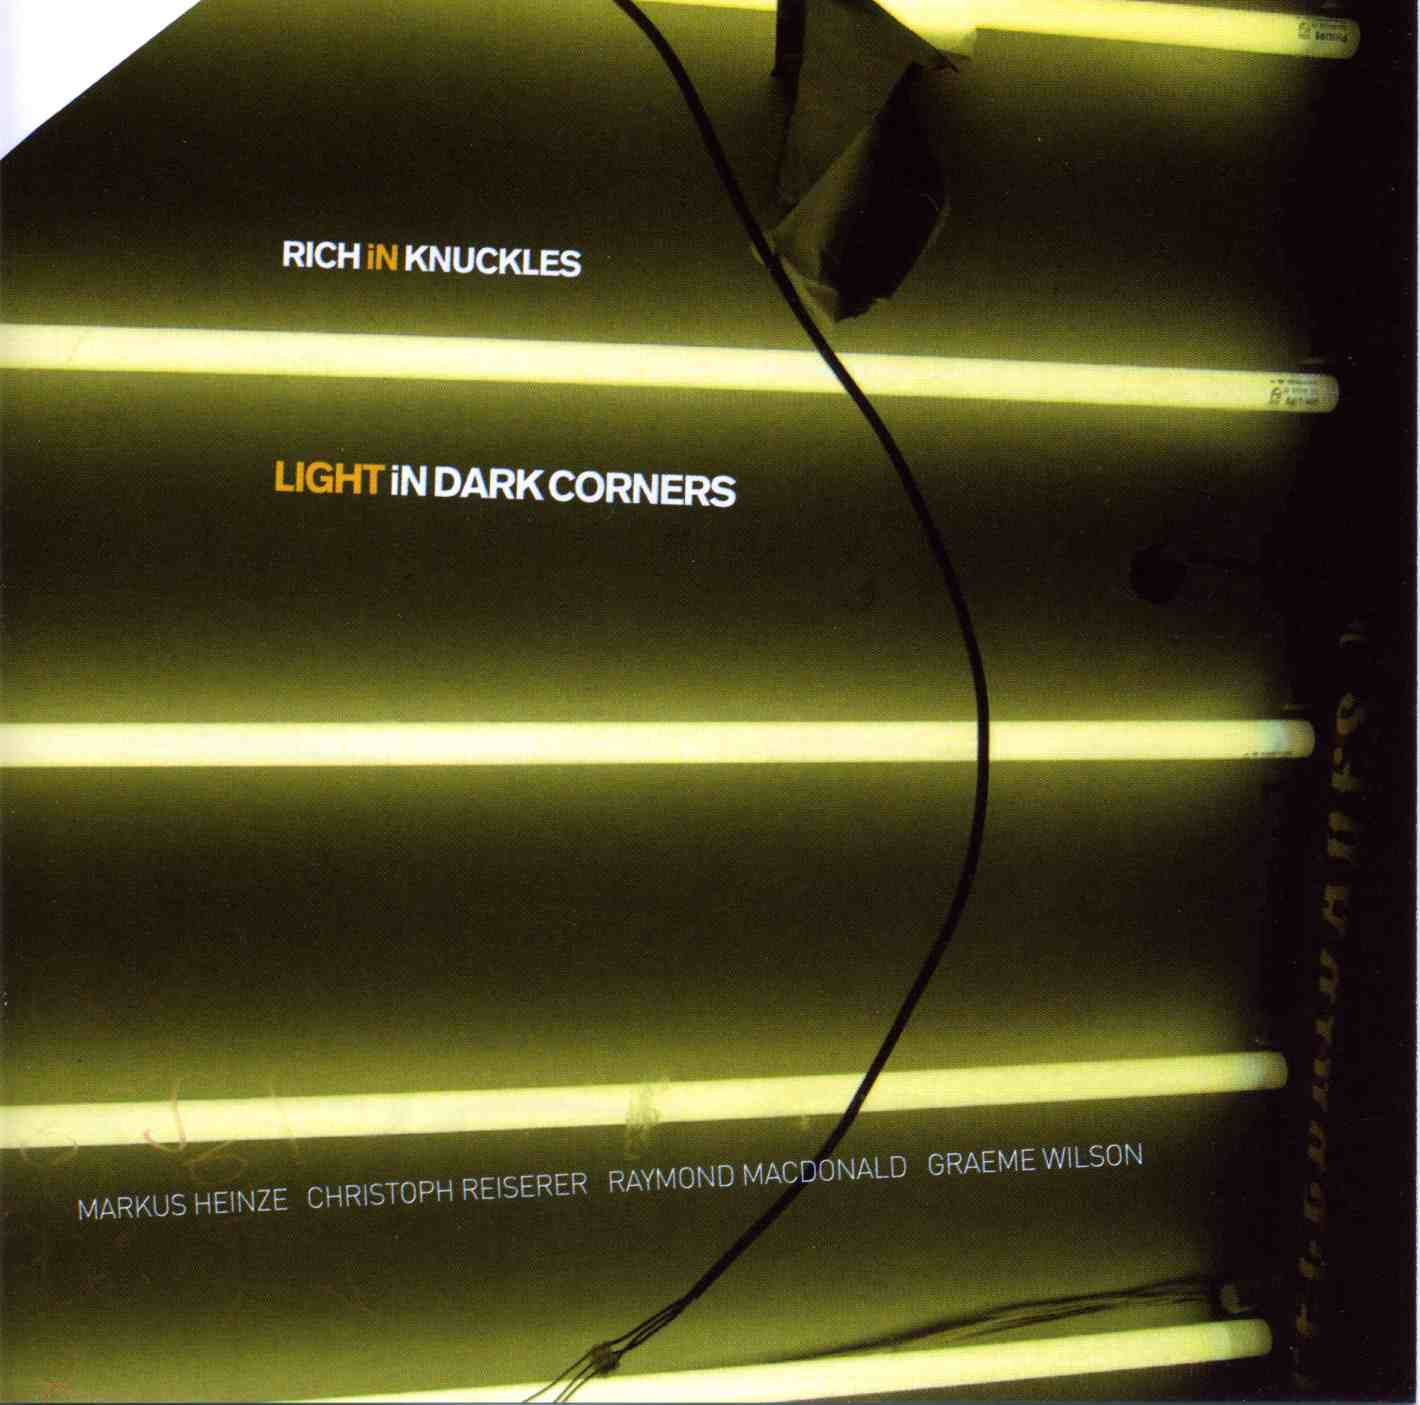 lightindrkcorners